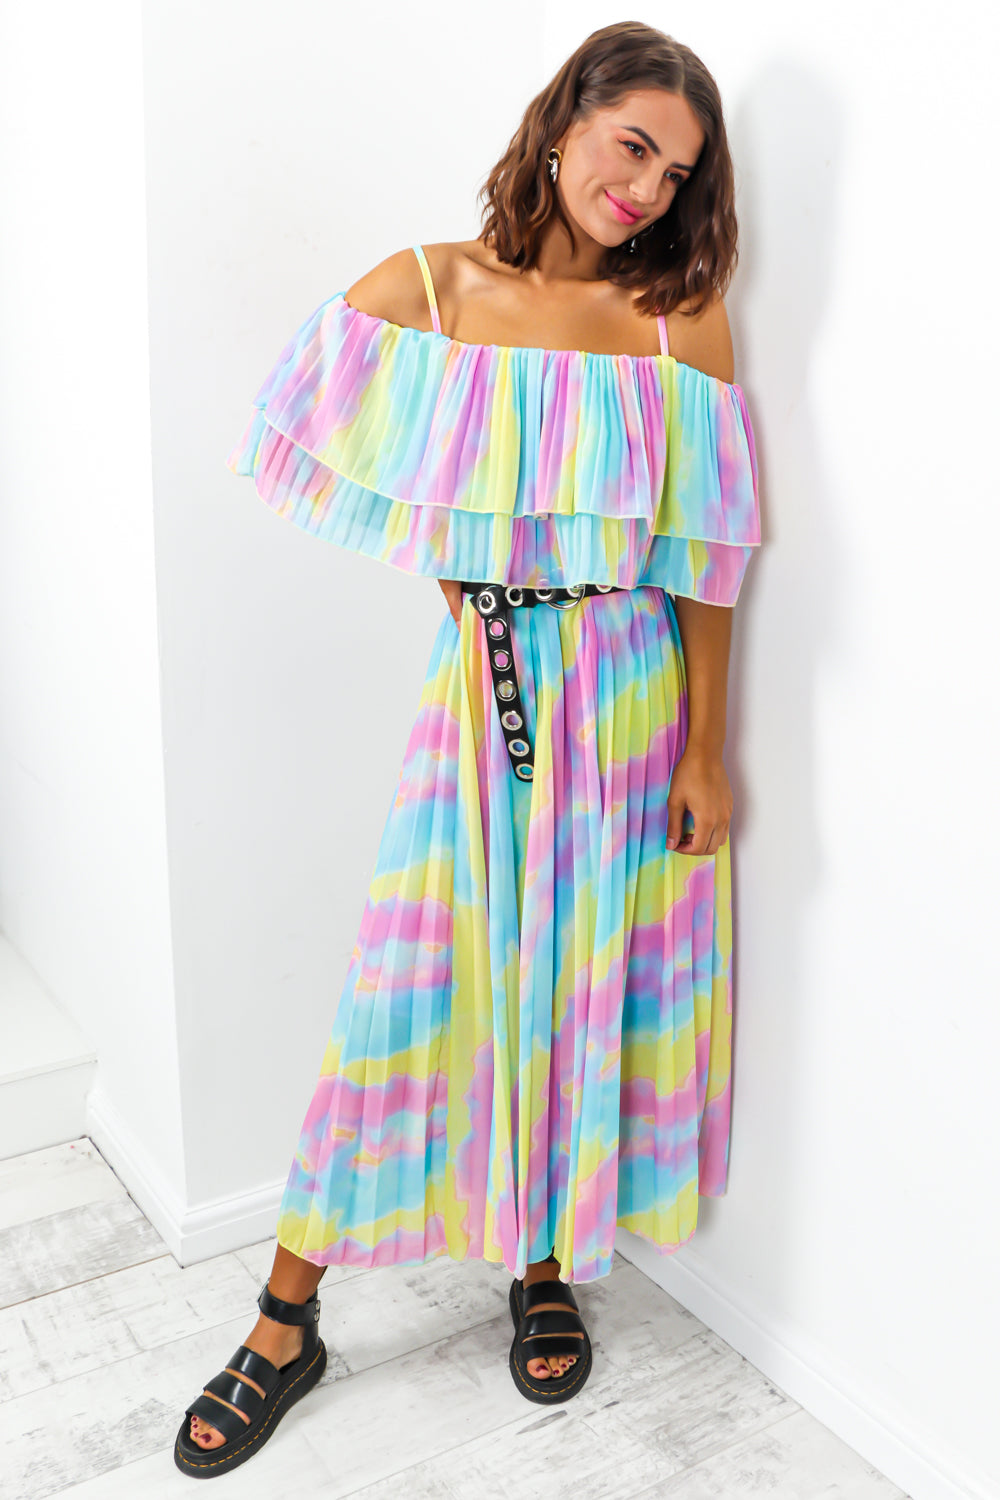 Tie dye pleated dress -DLSB womens fashion